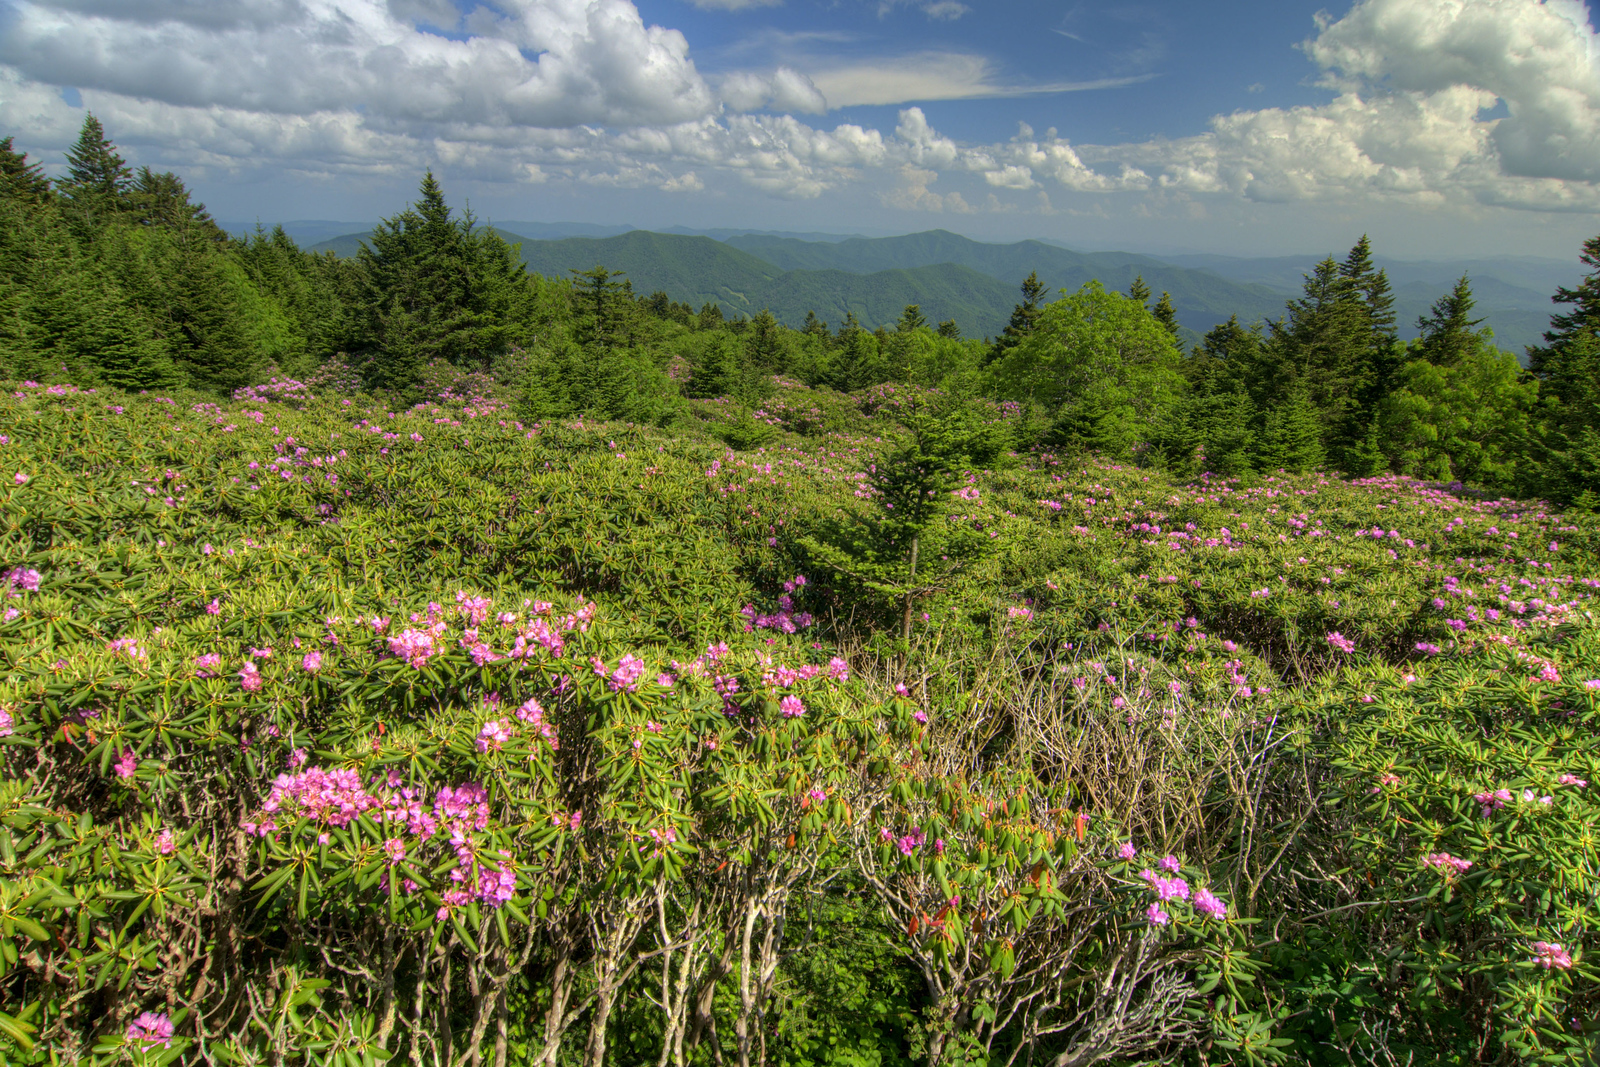 Blooming rhododendron with a view of distant mountains at the Rhododendron Gardens on Roan Mountain near the town of Roan Mountain, TN on Sunday, June 14, 2015. Copyright 2015 Jason Barnette Roan Mountain straddles the border between the towns of Roan Mountain, Tennessee and Bakersville, North Carolina. The top of the mountain is known for having the largest natural rhododendron gardens in the country, maintained and operated by the National Forest Service. The recreation area includes hiking trails, the gardens, scenic overlooks, and the Appalachian Trail.